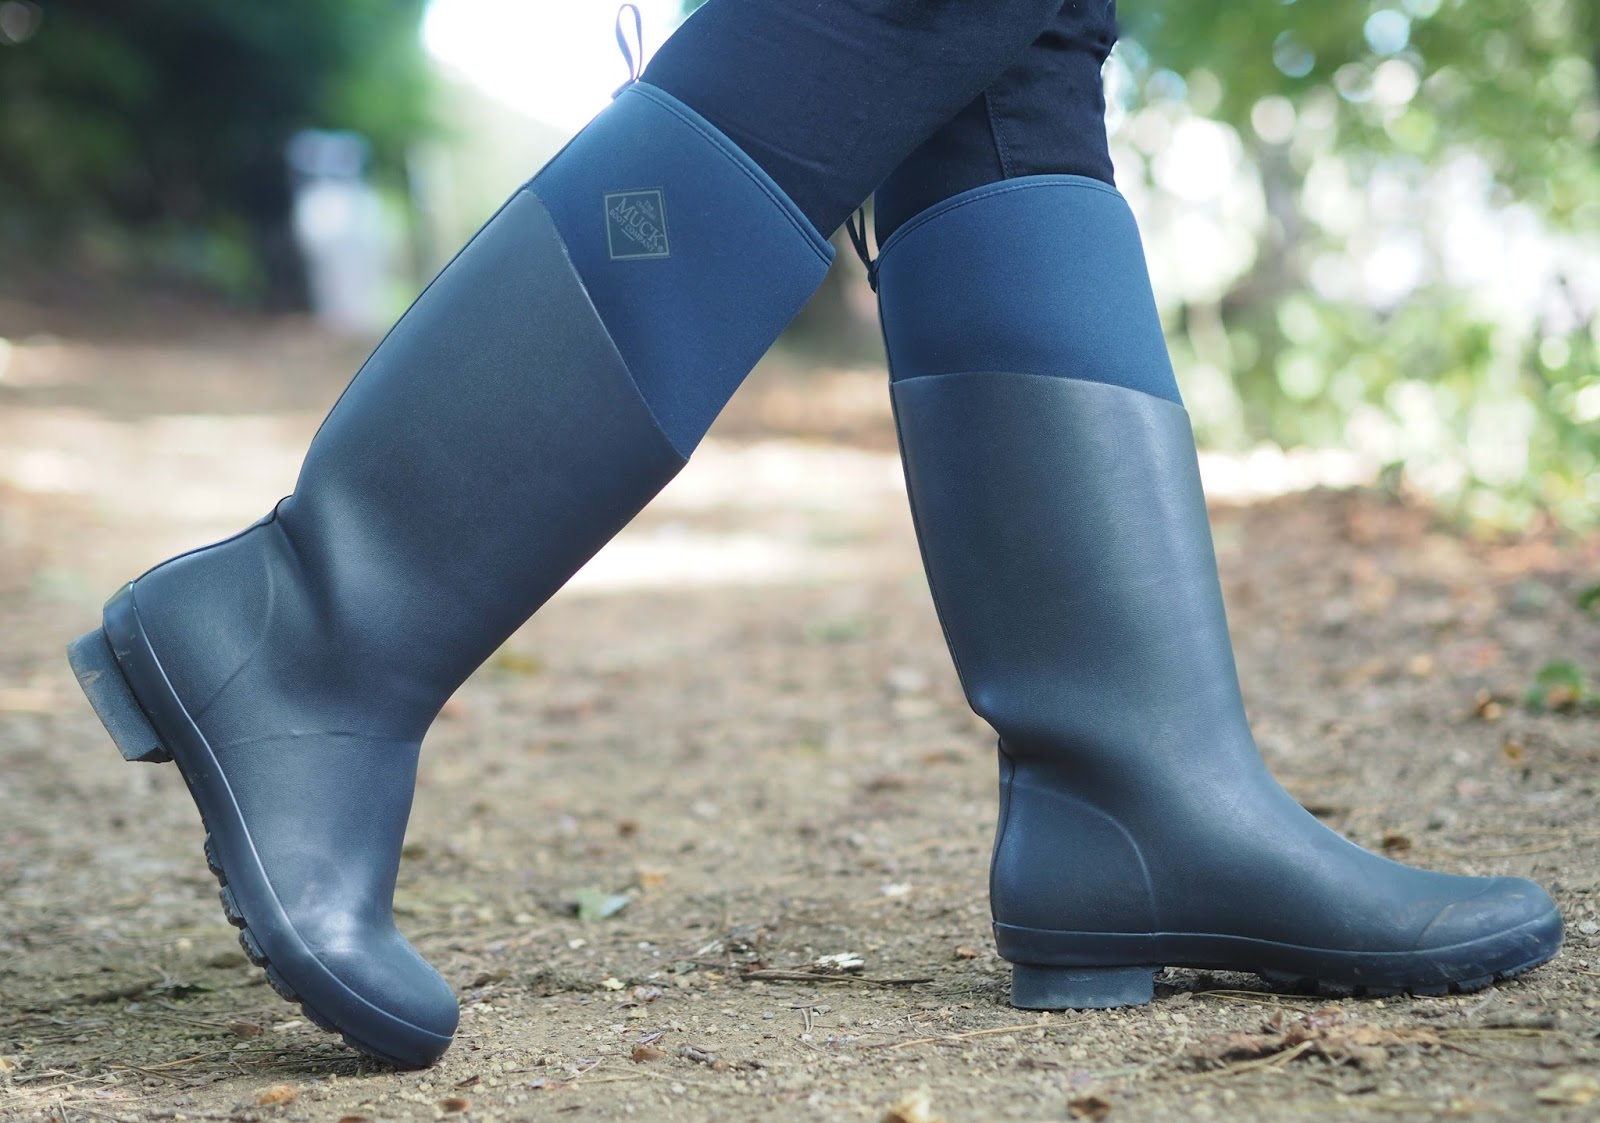 Navy muck boots with skinny jeans, warm wellingtons, wellies